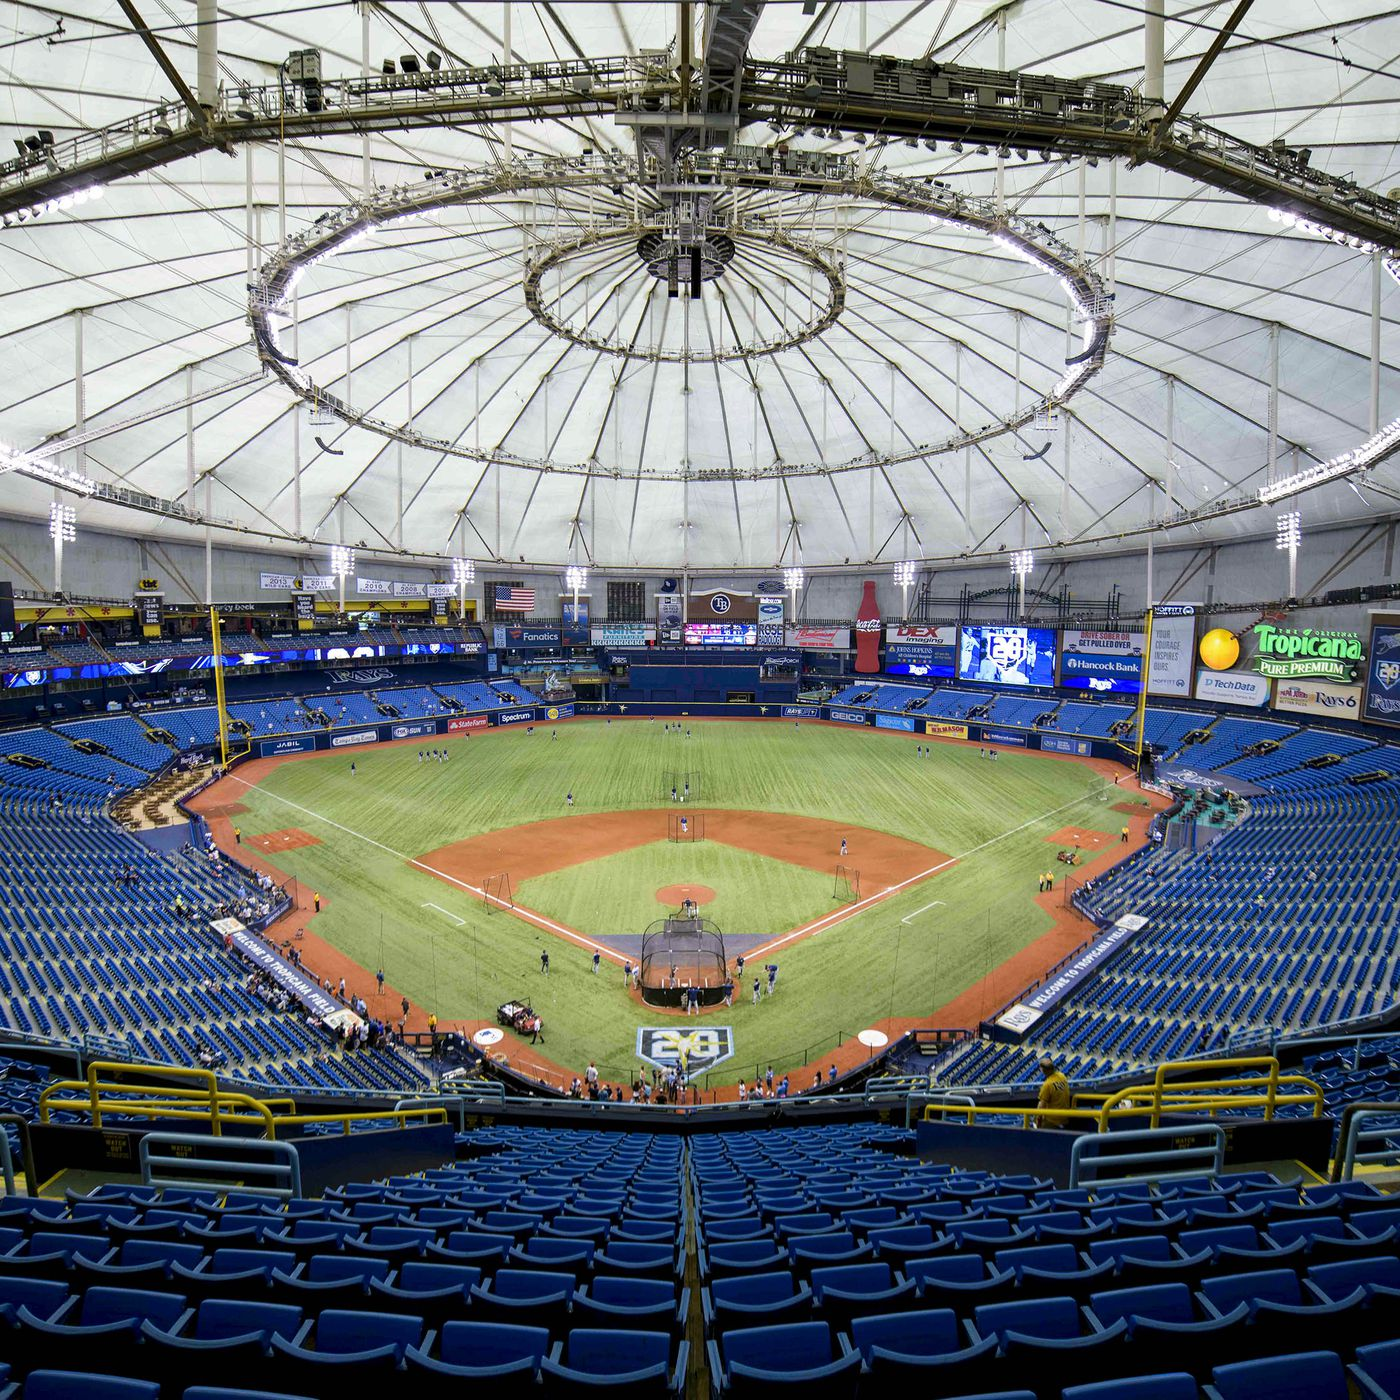 Tropicana Field Seating Chart With Seat Numbers